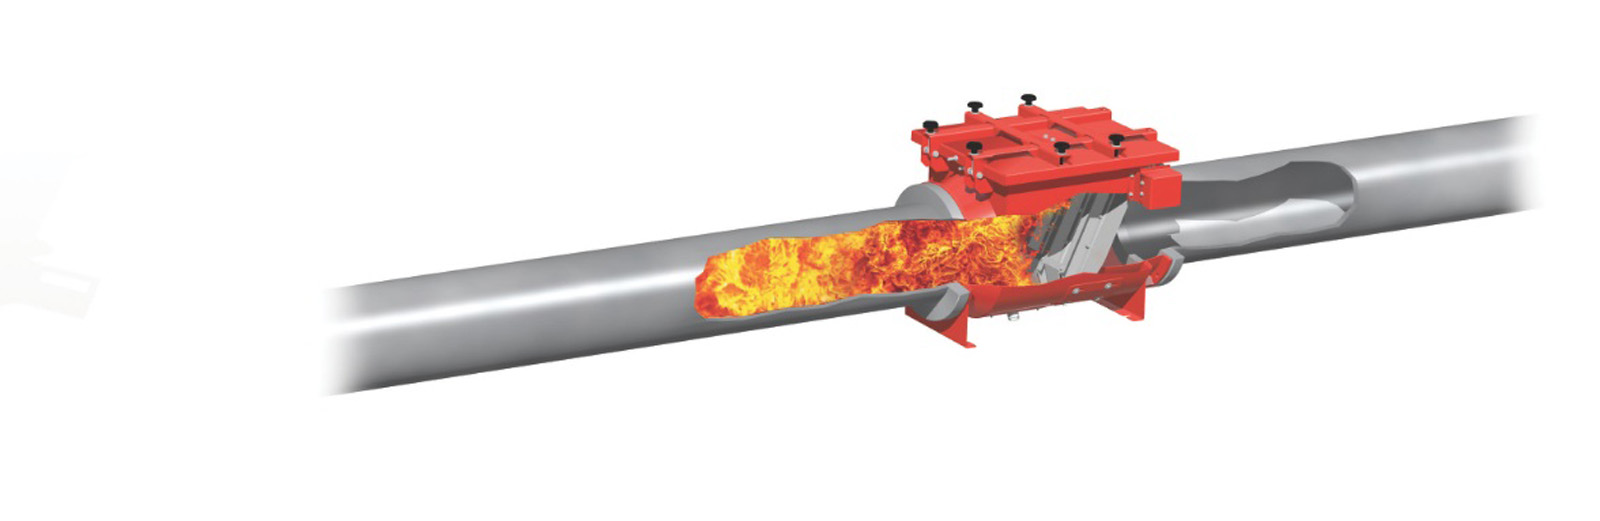 Integrated explosion protection from IEP Technologies: 75 milliseconds to save lives